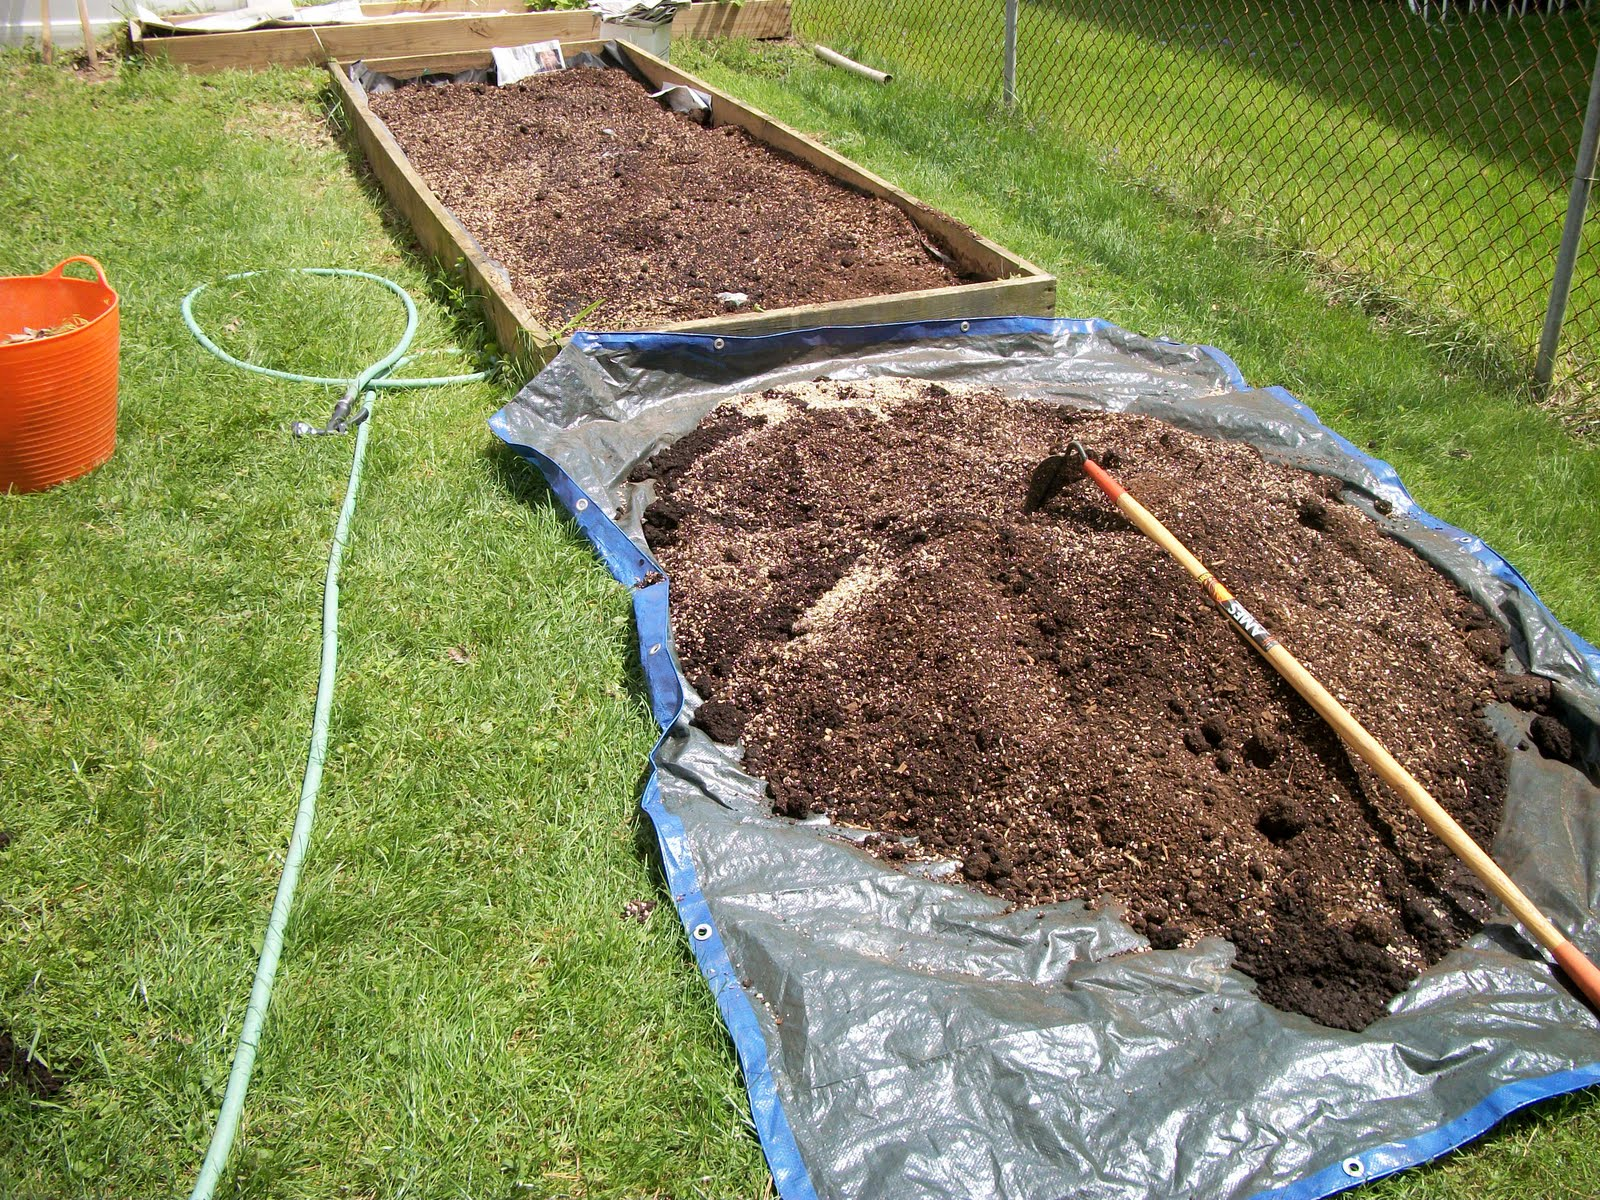 The Book Recommends Mixing The Soil On A Tarp. I Used A Hoe To Mix Together  And When I Was Finished, My Husband Helped Me Dump Each Load Into The Garden .